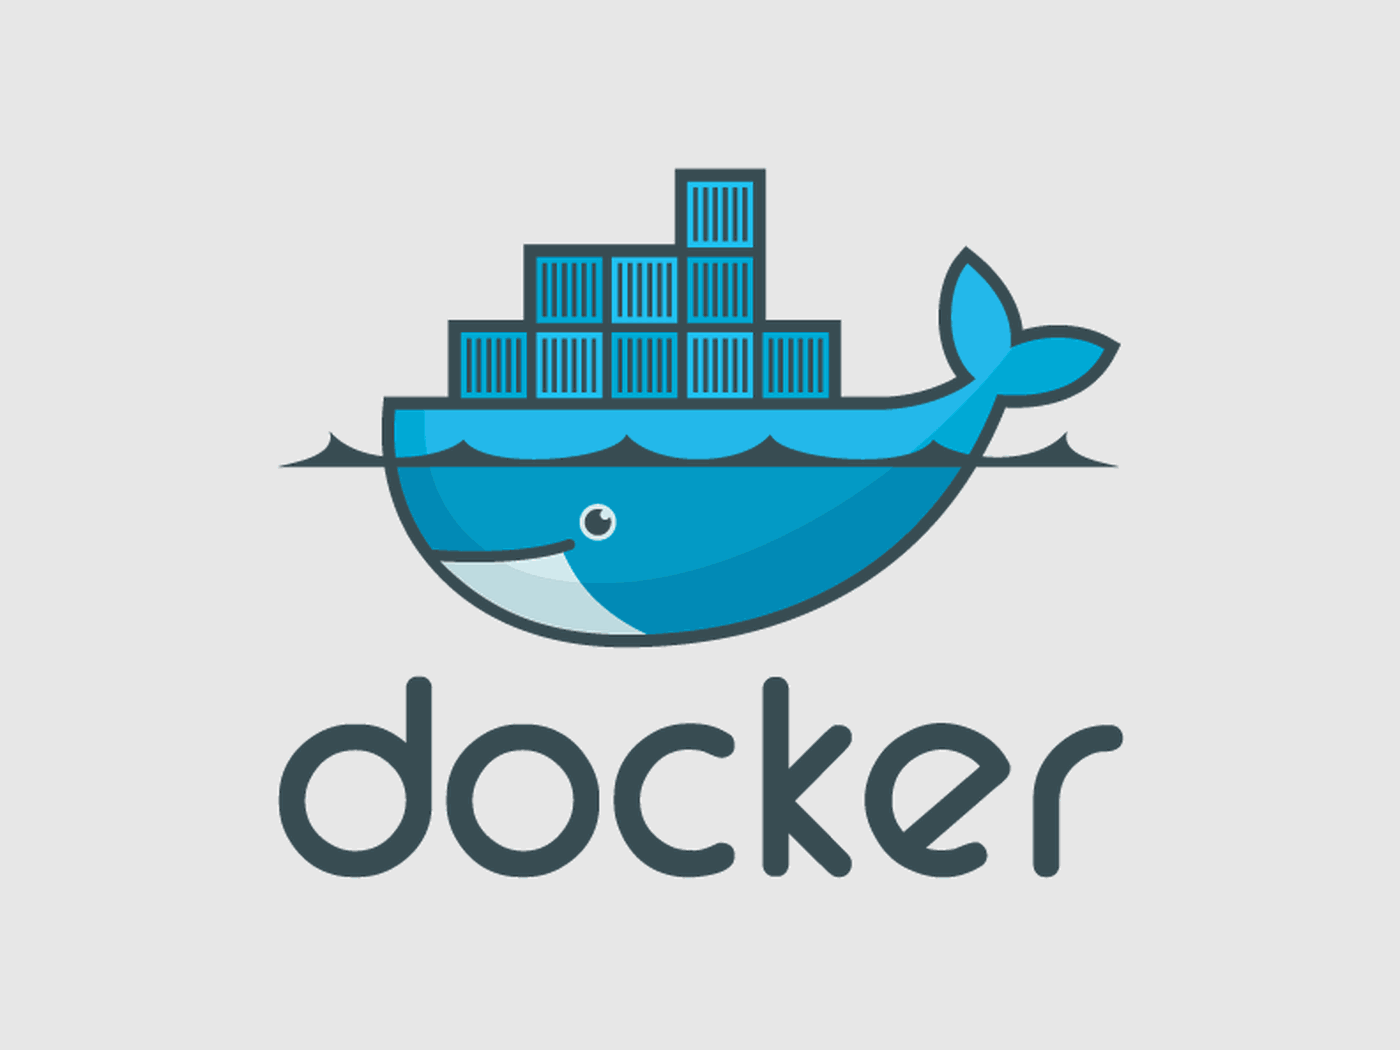 Living in a Docker world - The Verge